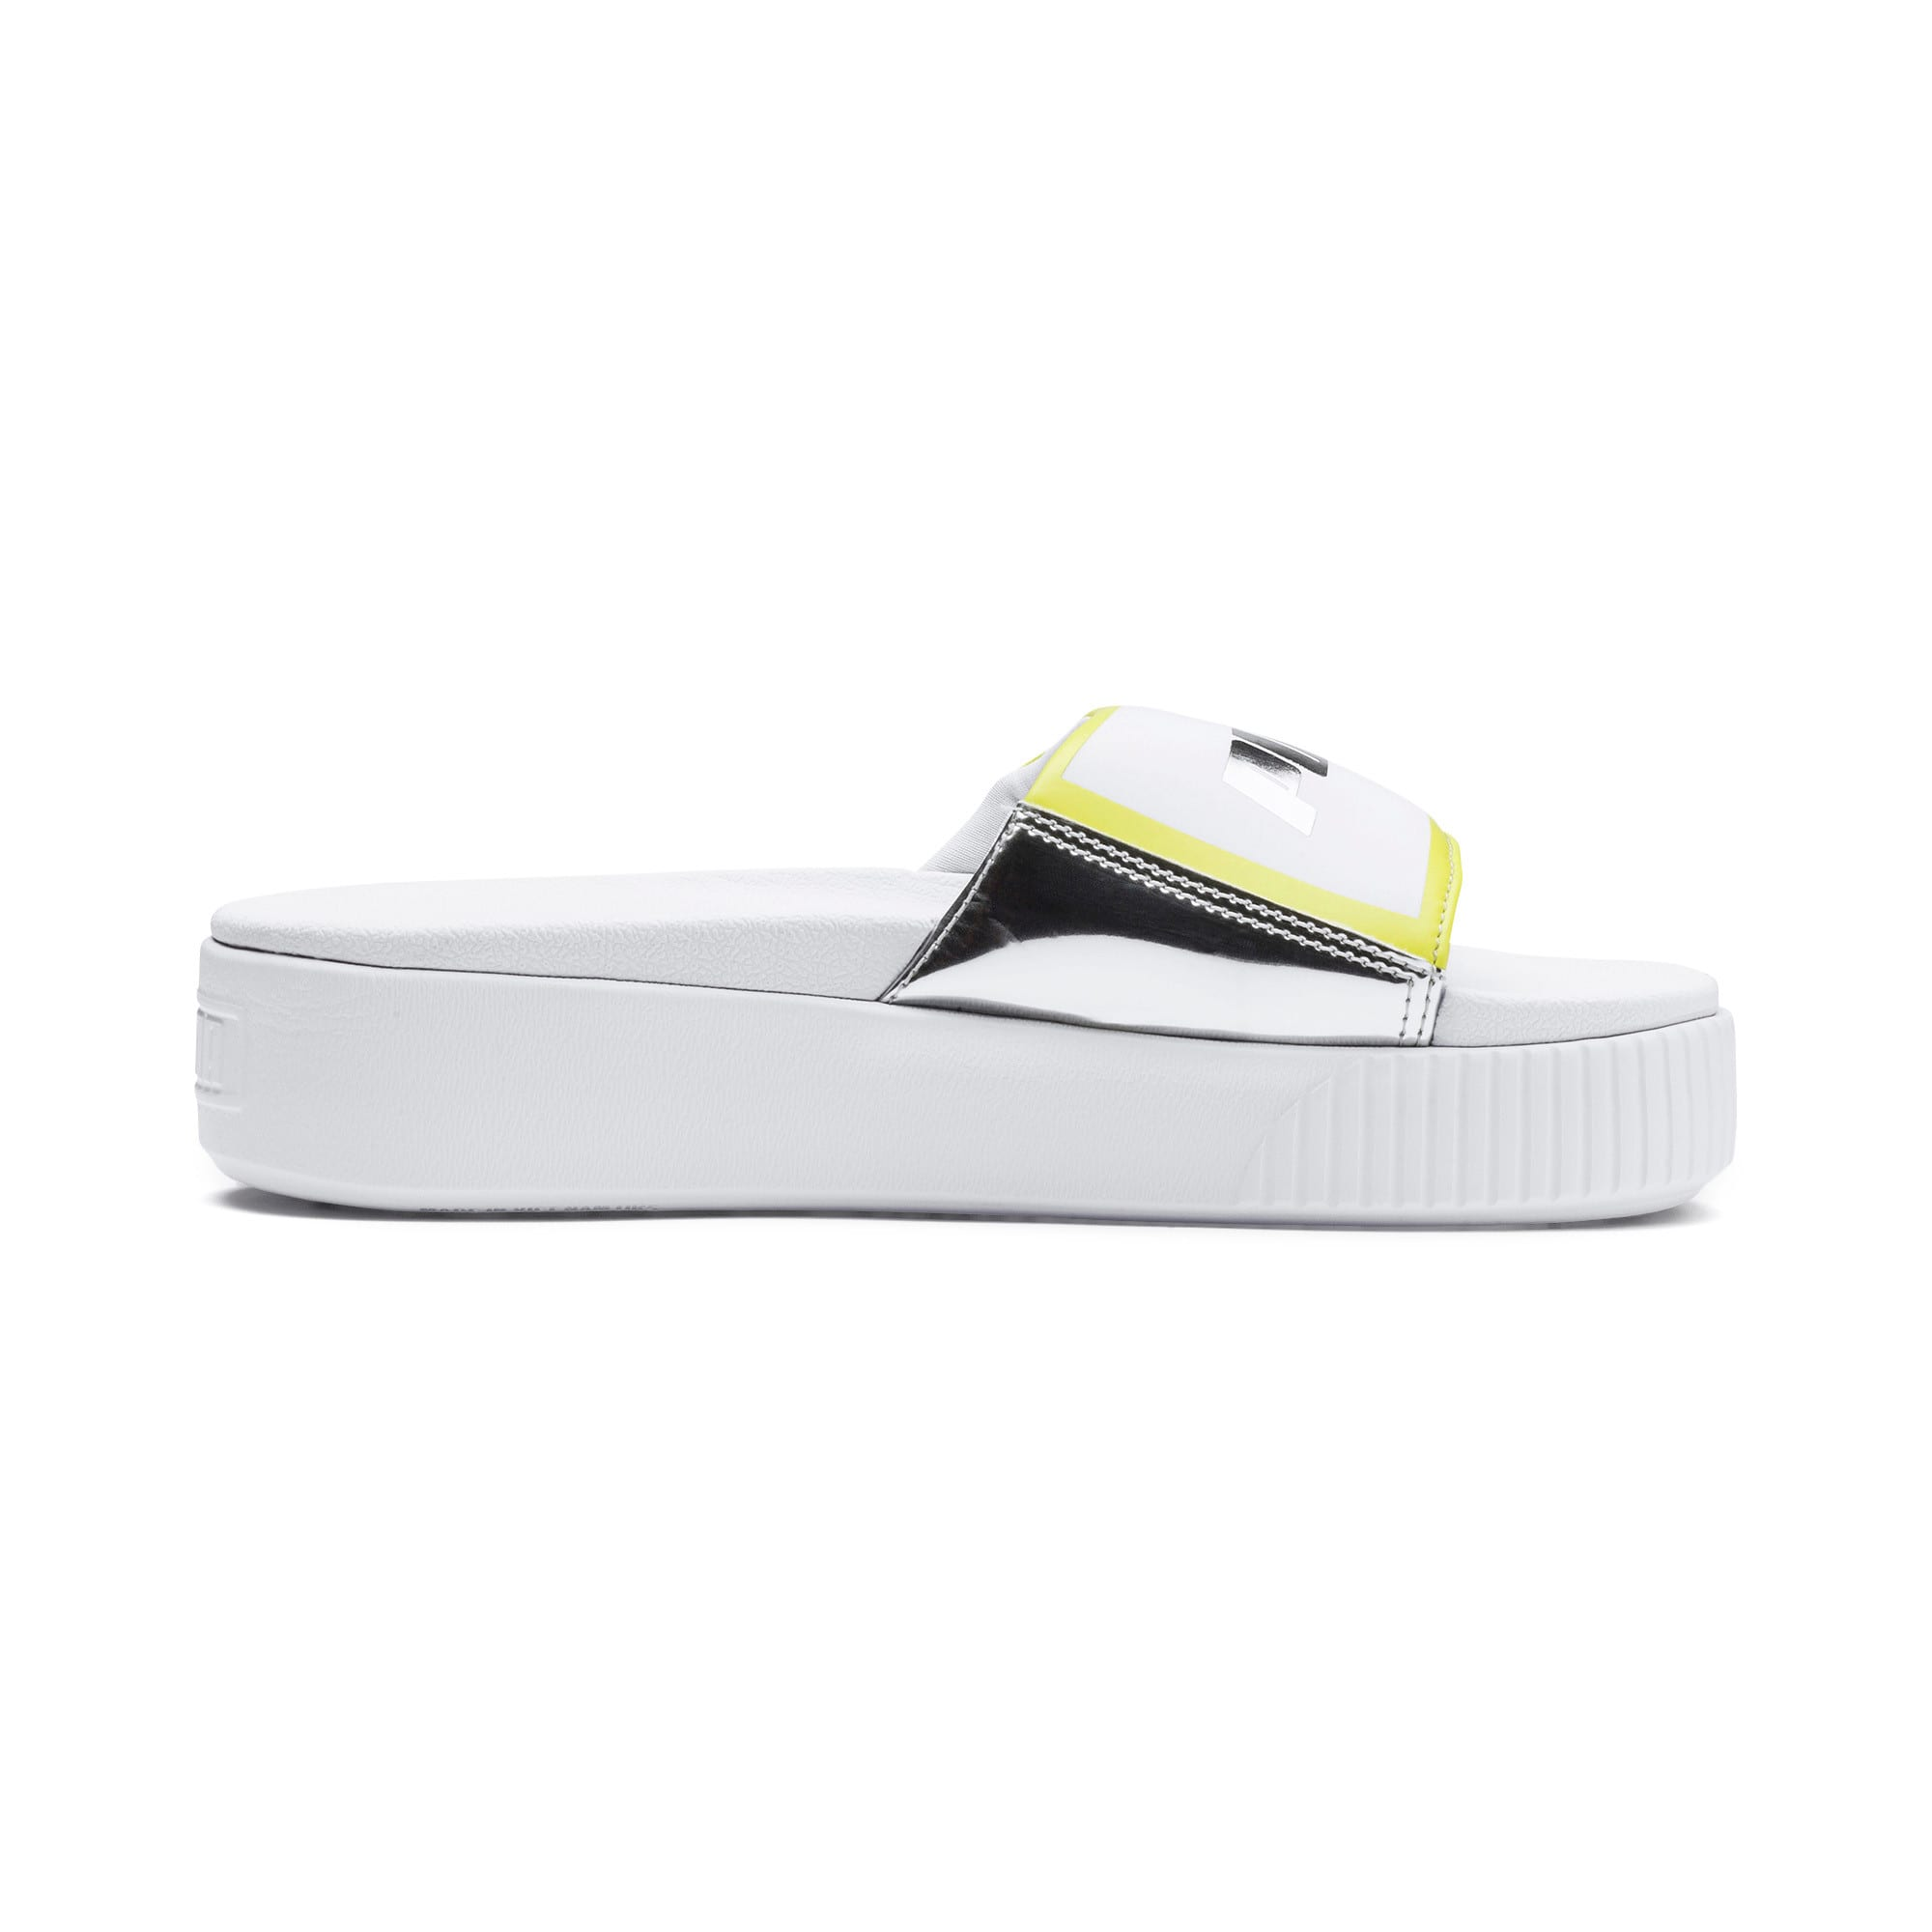 Thumbnail 5 of Platform Slide Trailblazer Metallic Women's Sandals, Puma White-Puma Silver, medium